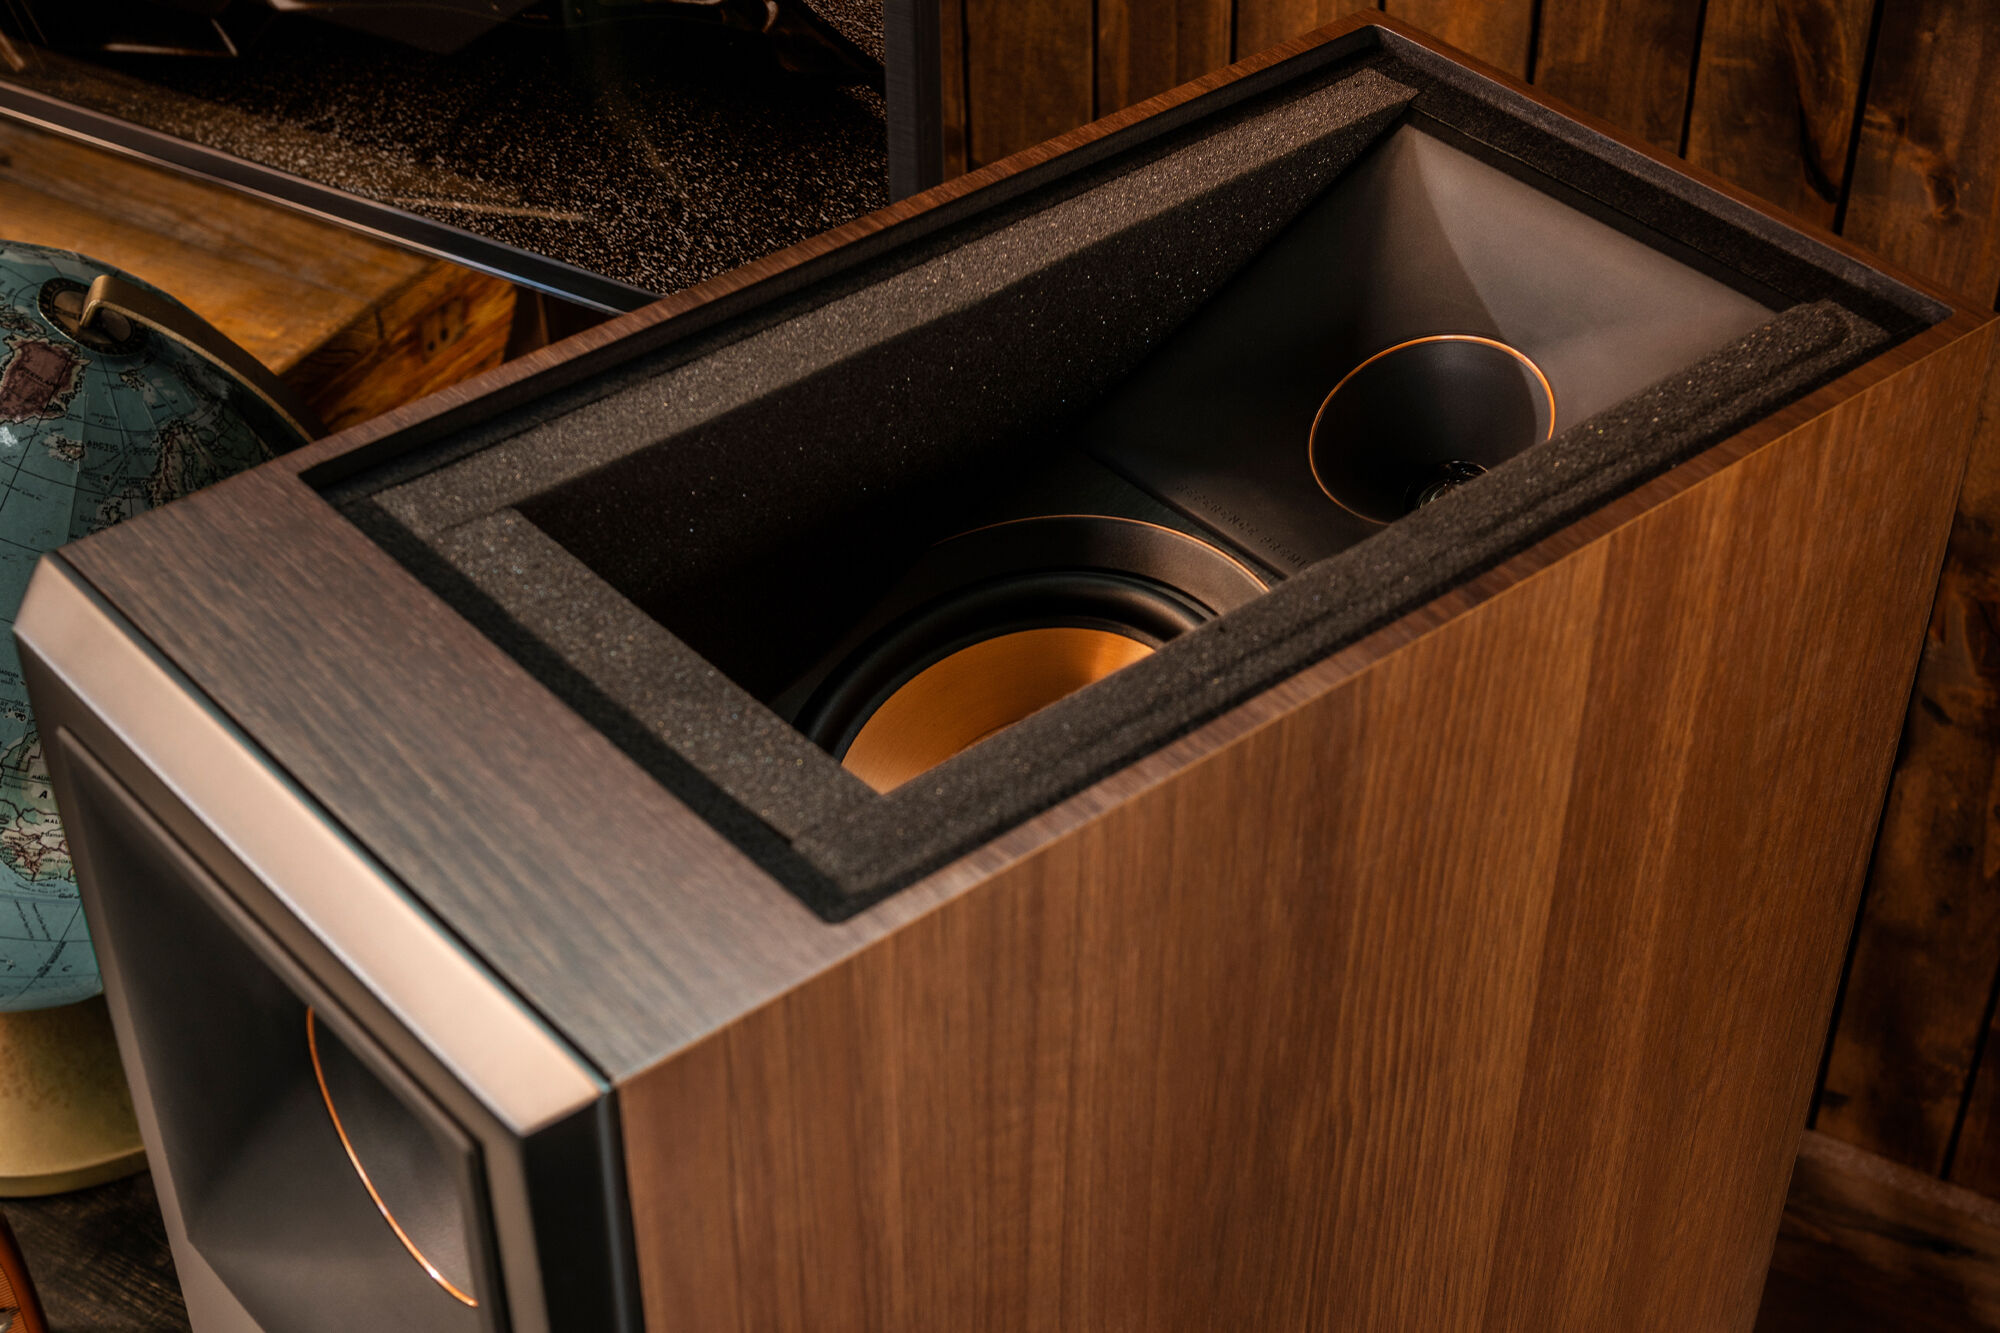 KLIPSCH reference best dolby atmos floorstanding speakers